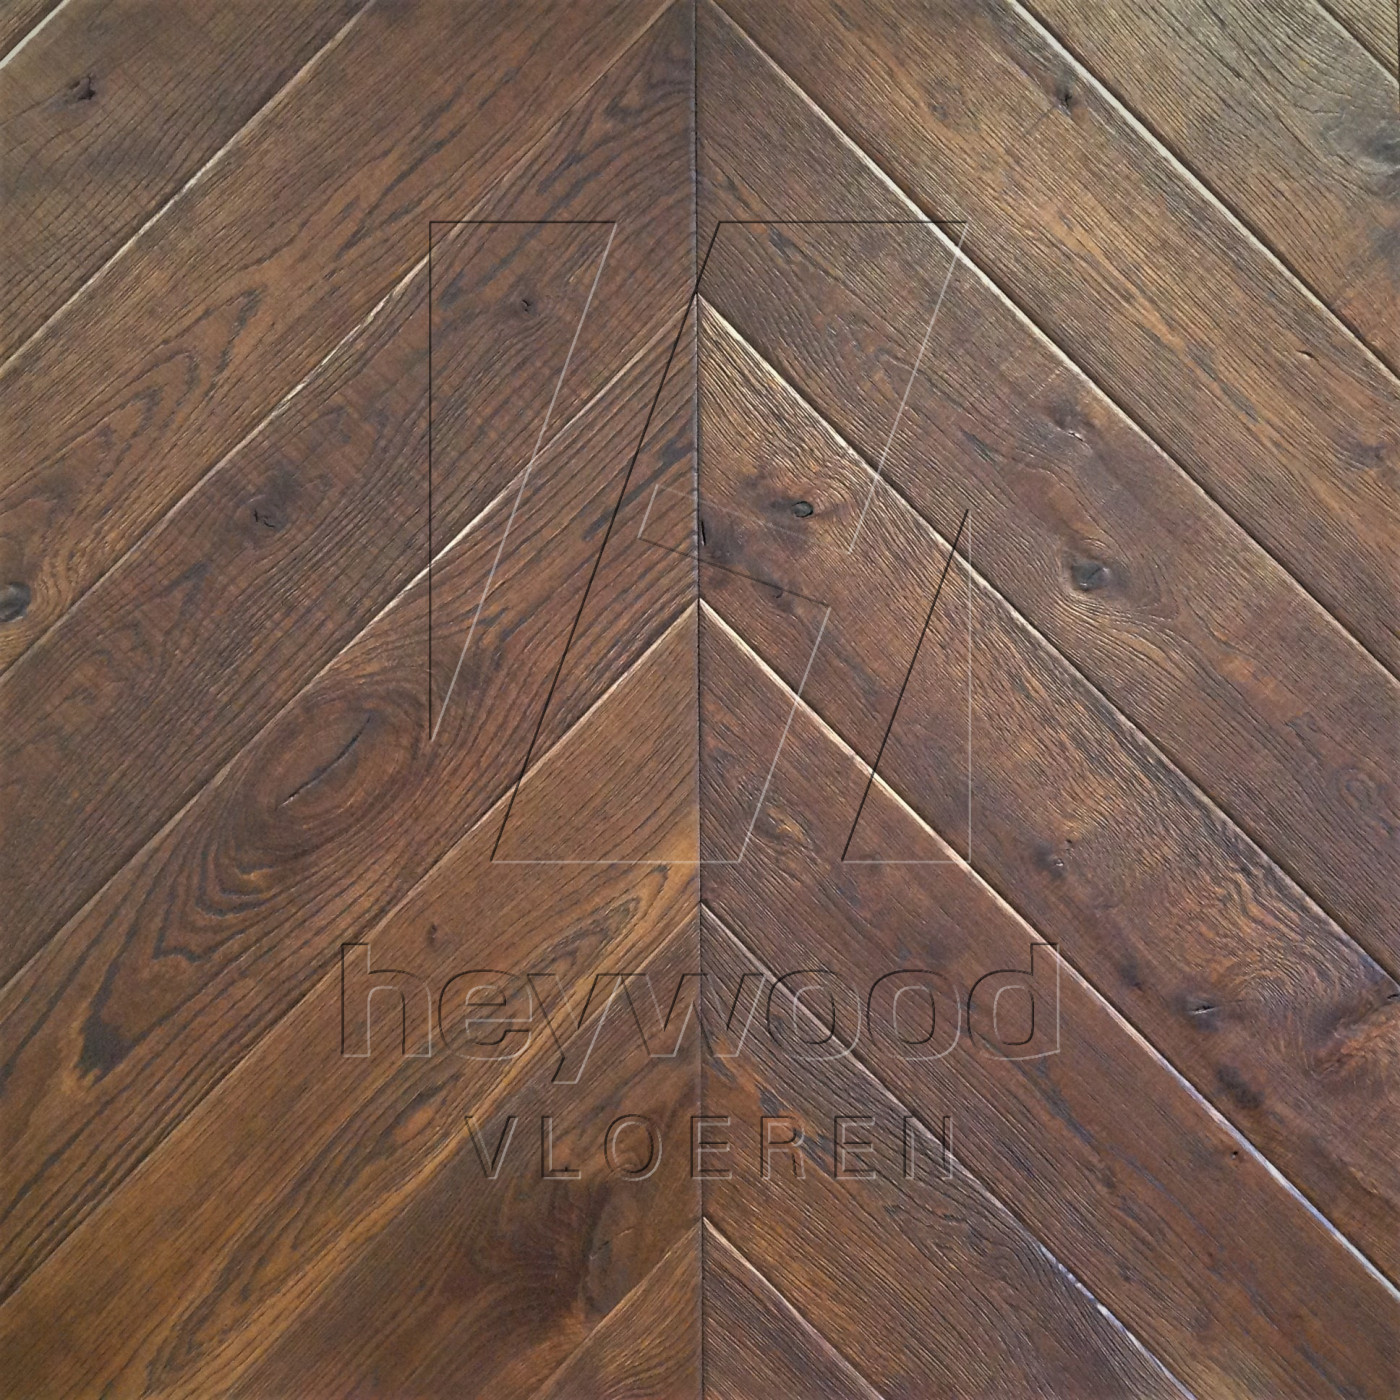 Knotting Hill Chevron 'Yorkshire' in Chevron of Pattern & Panel Floors